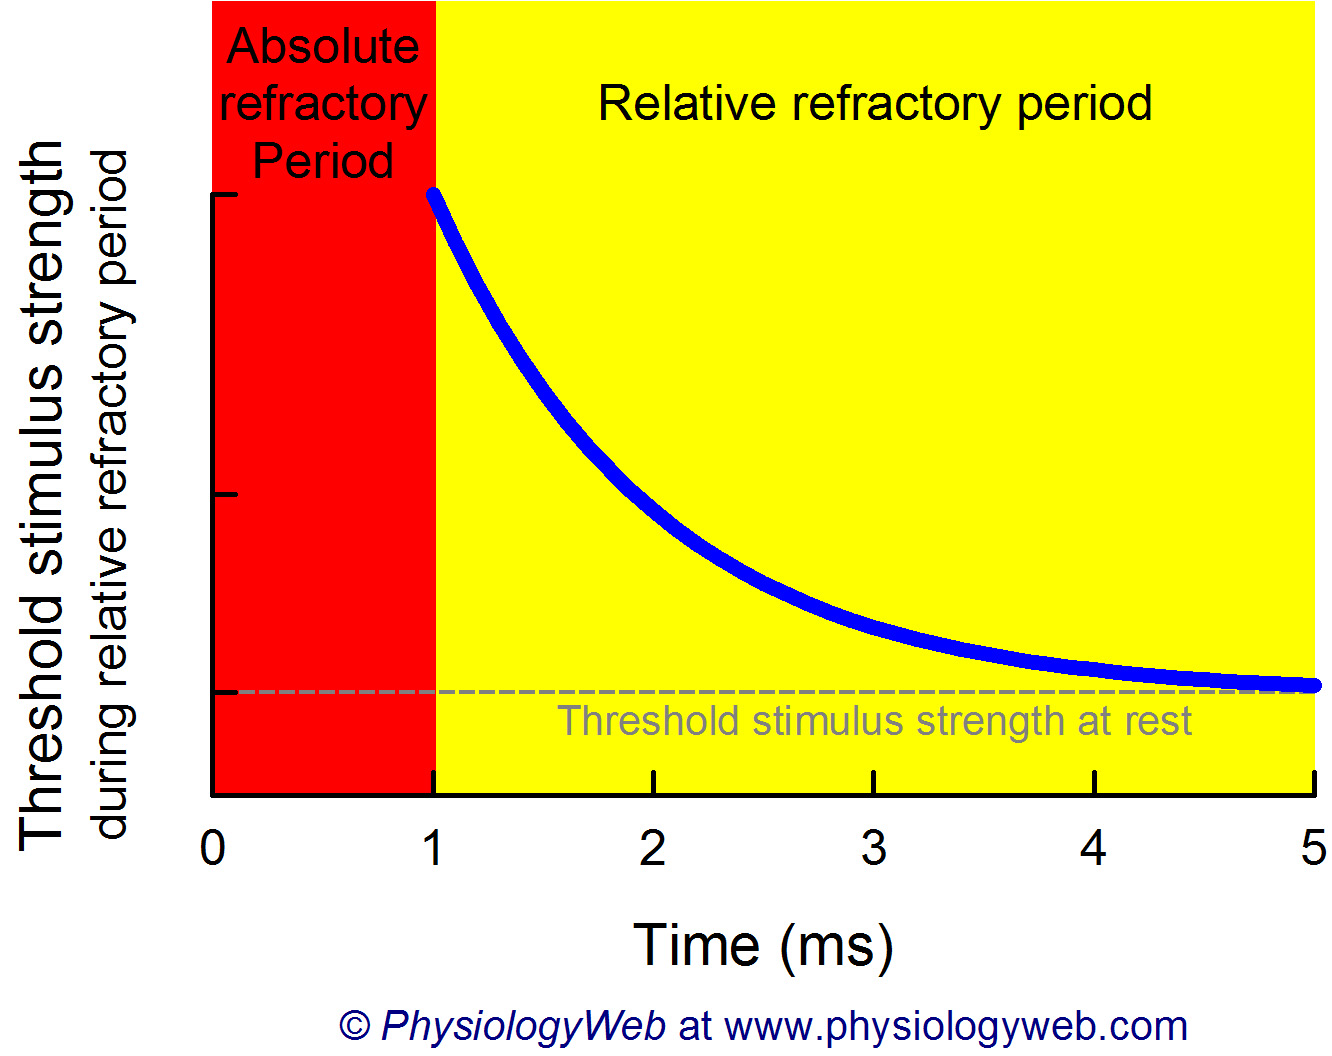 Threshold stimulus strength during the relative reftractory period